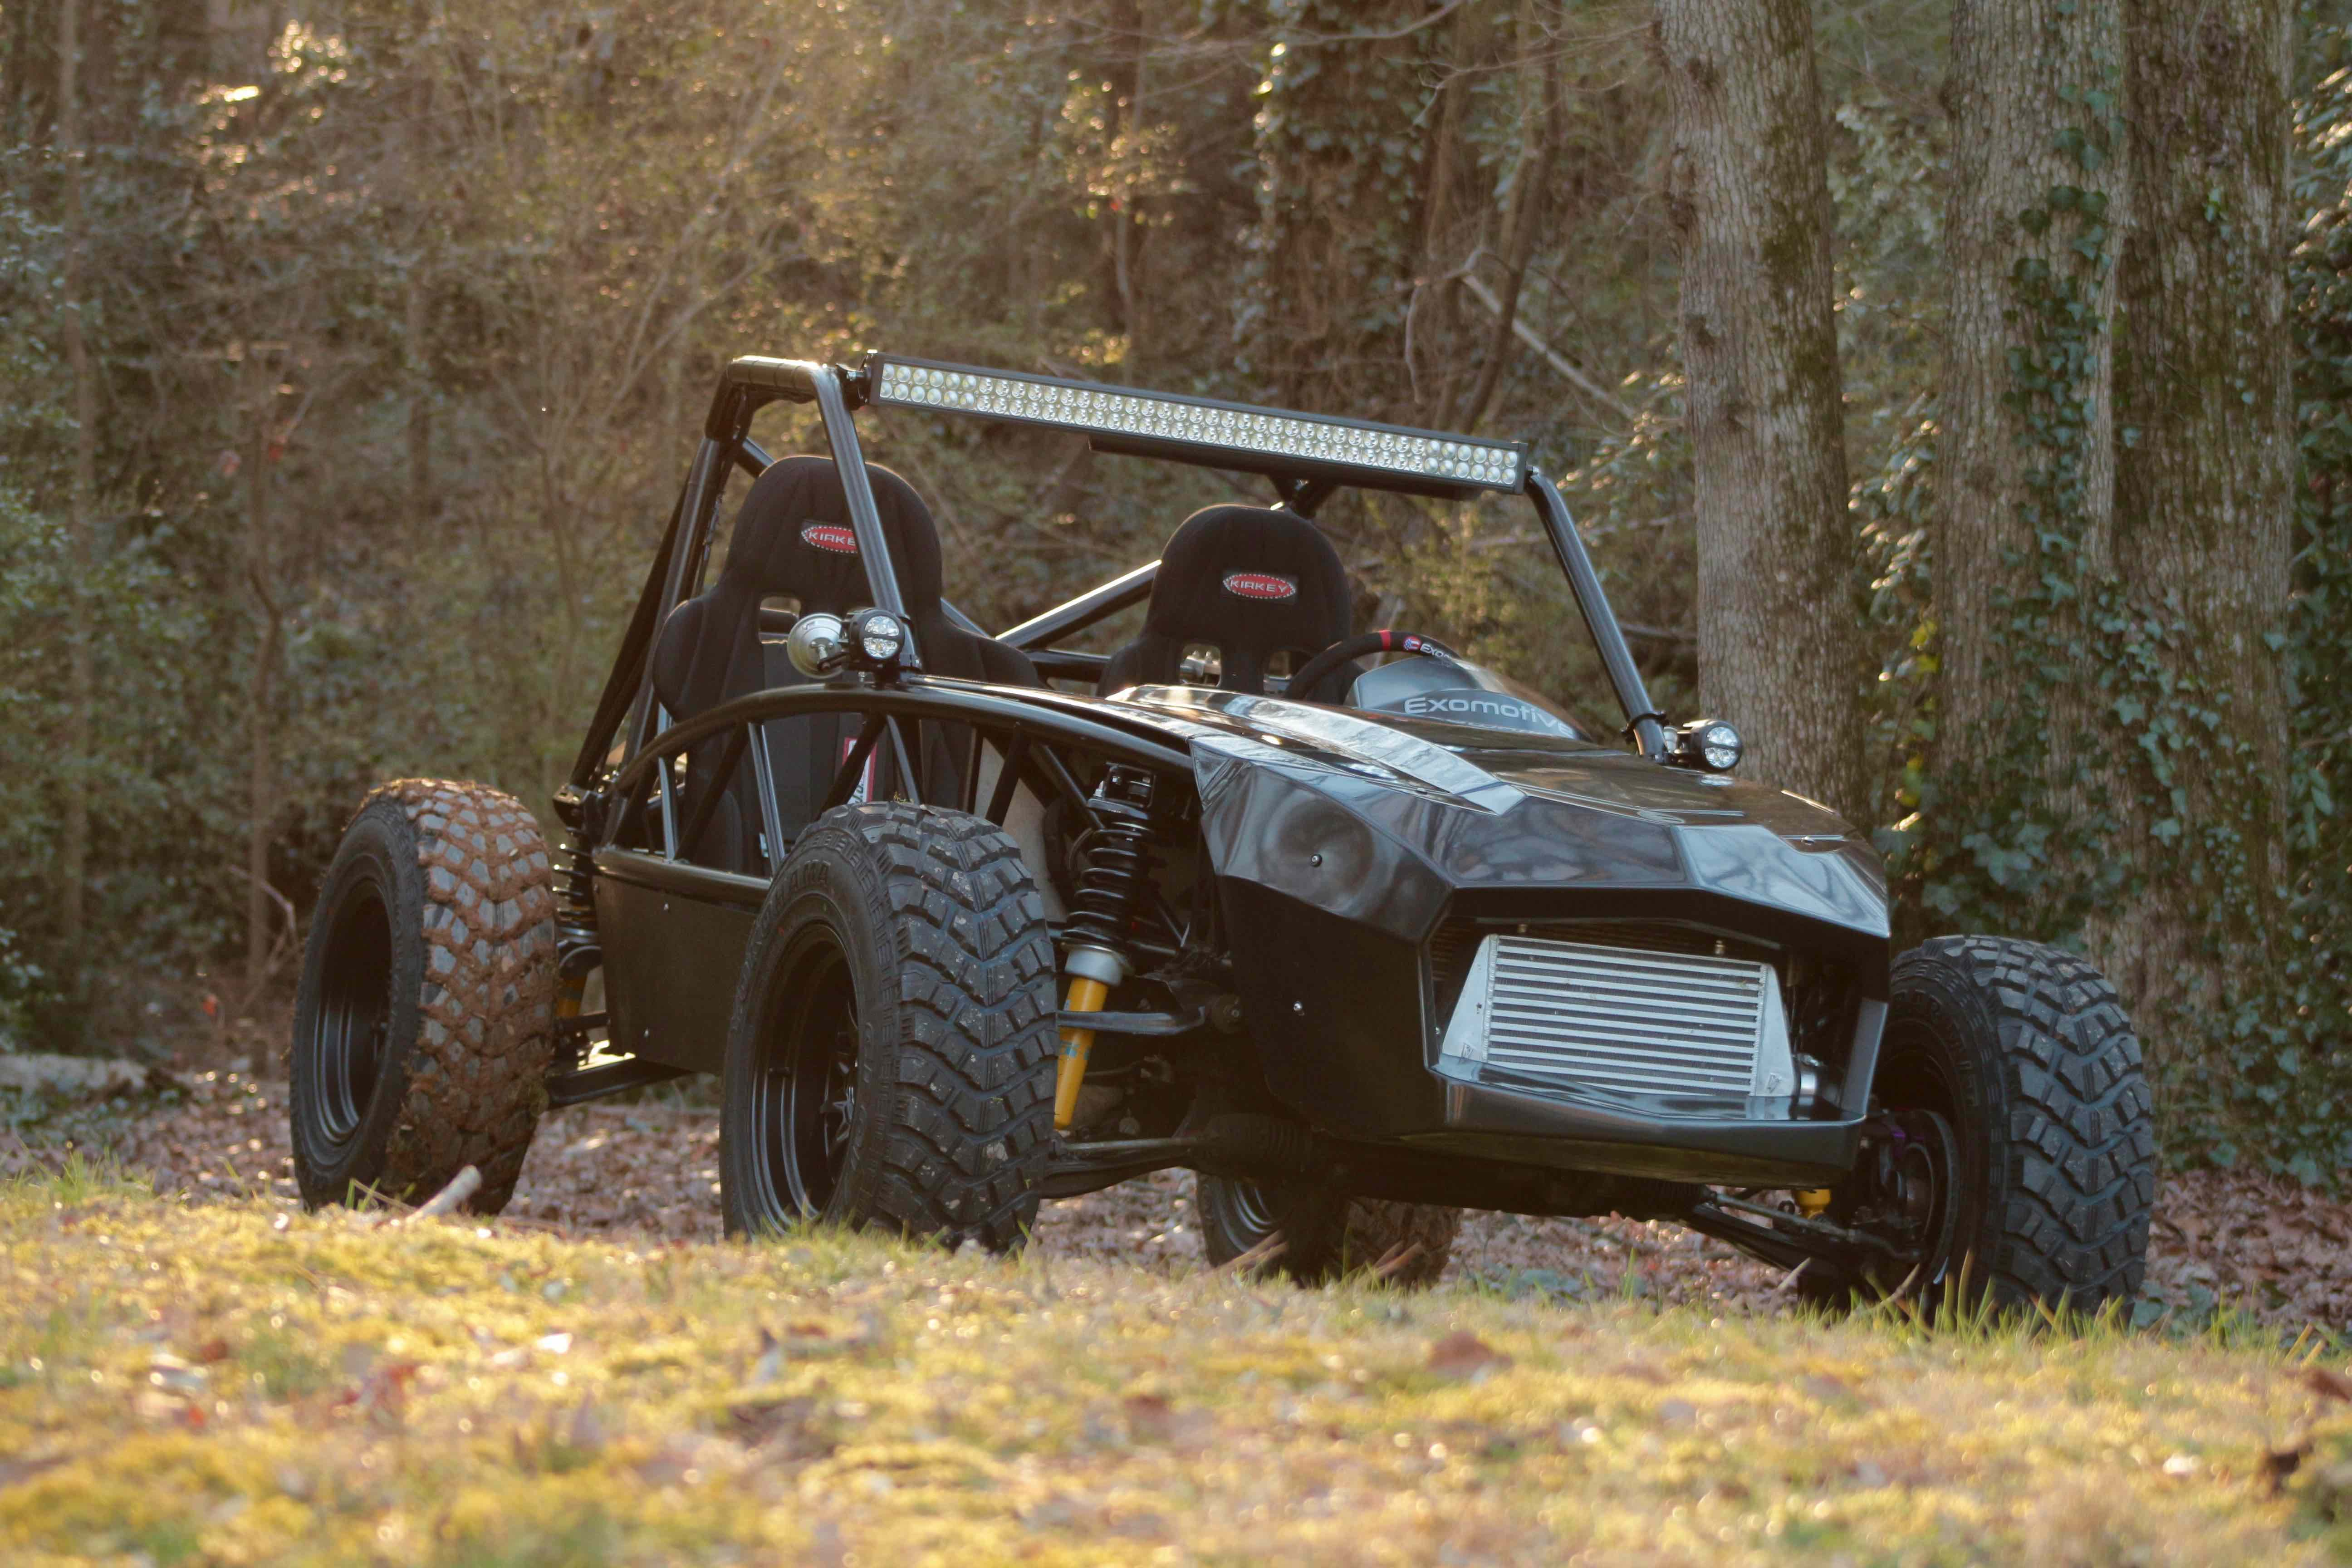 Exomotive-Exocet-Off-Road.jpg